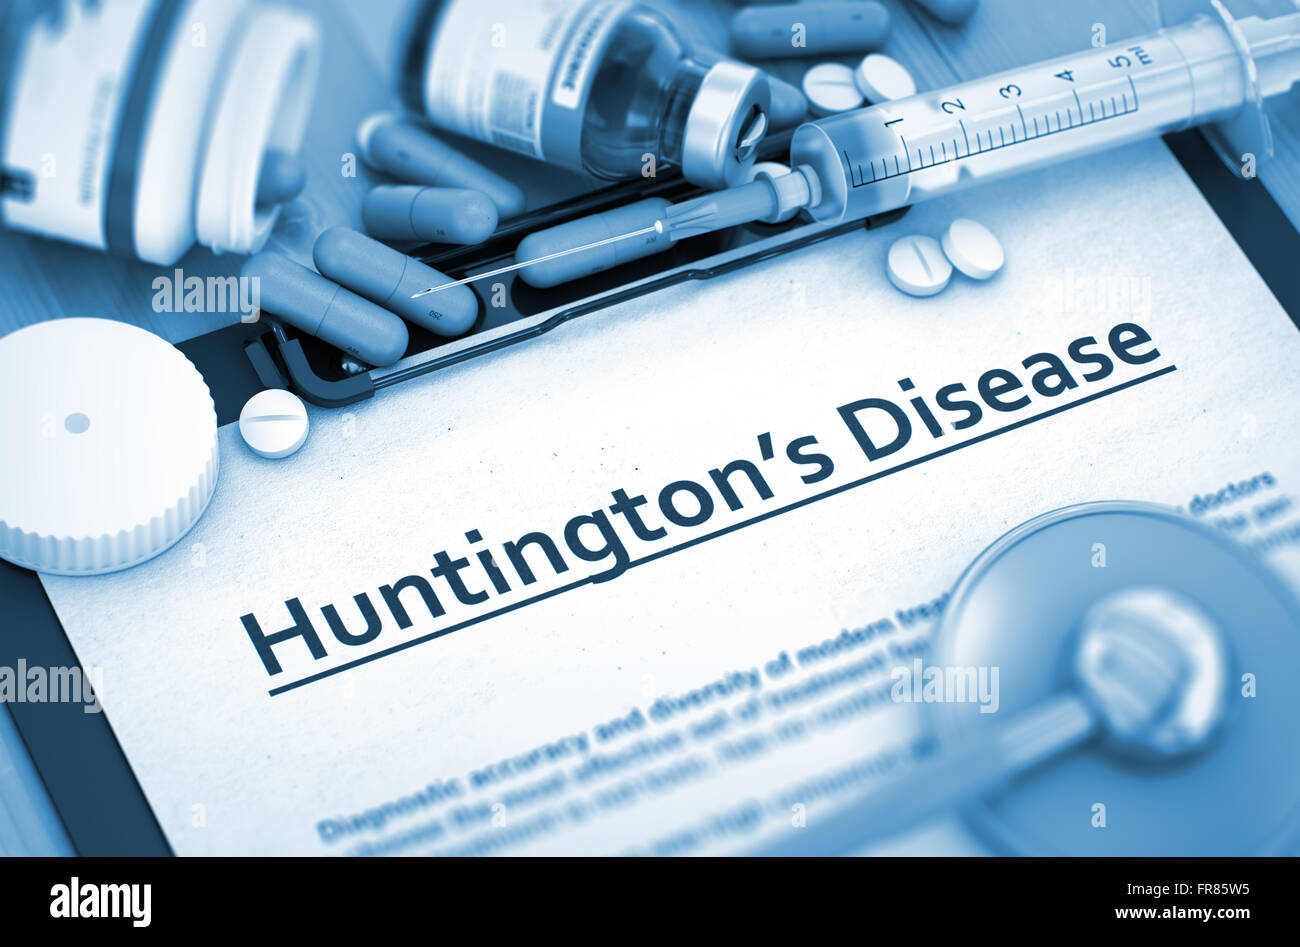 Watch How to Diagnose Huntingtons Disease video